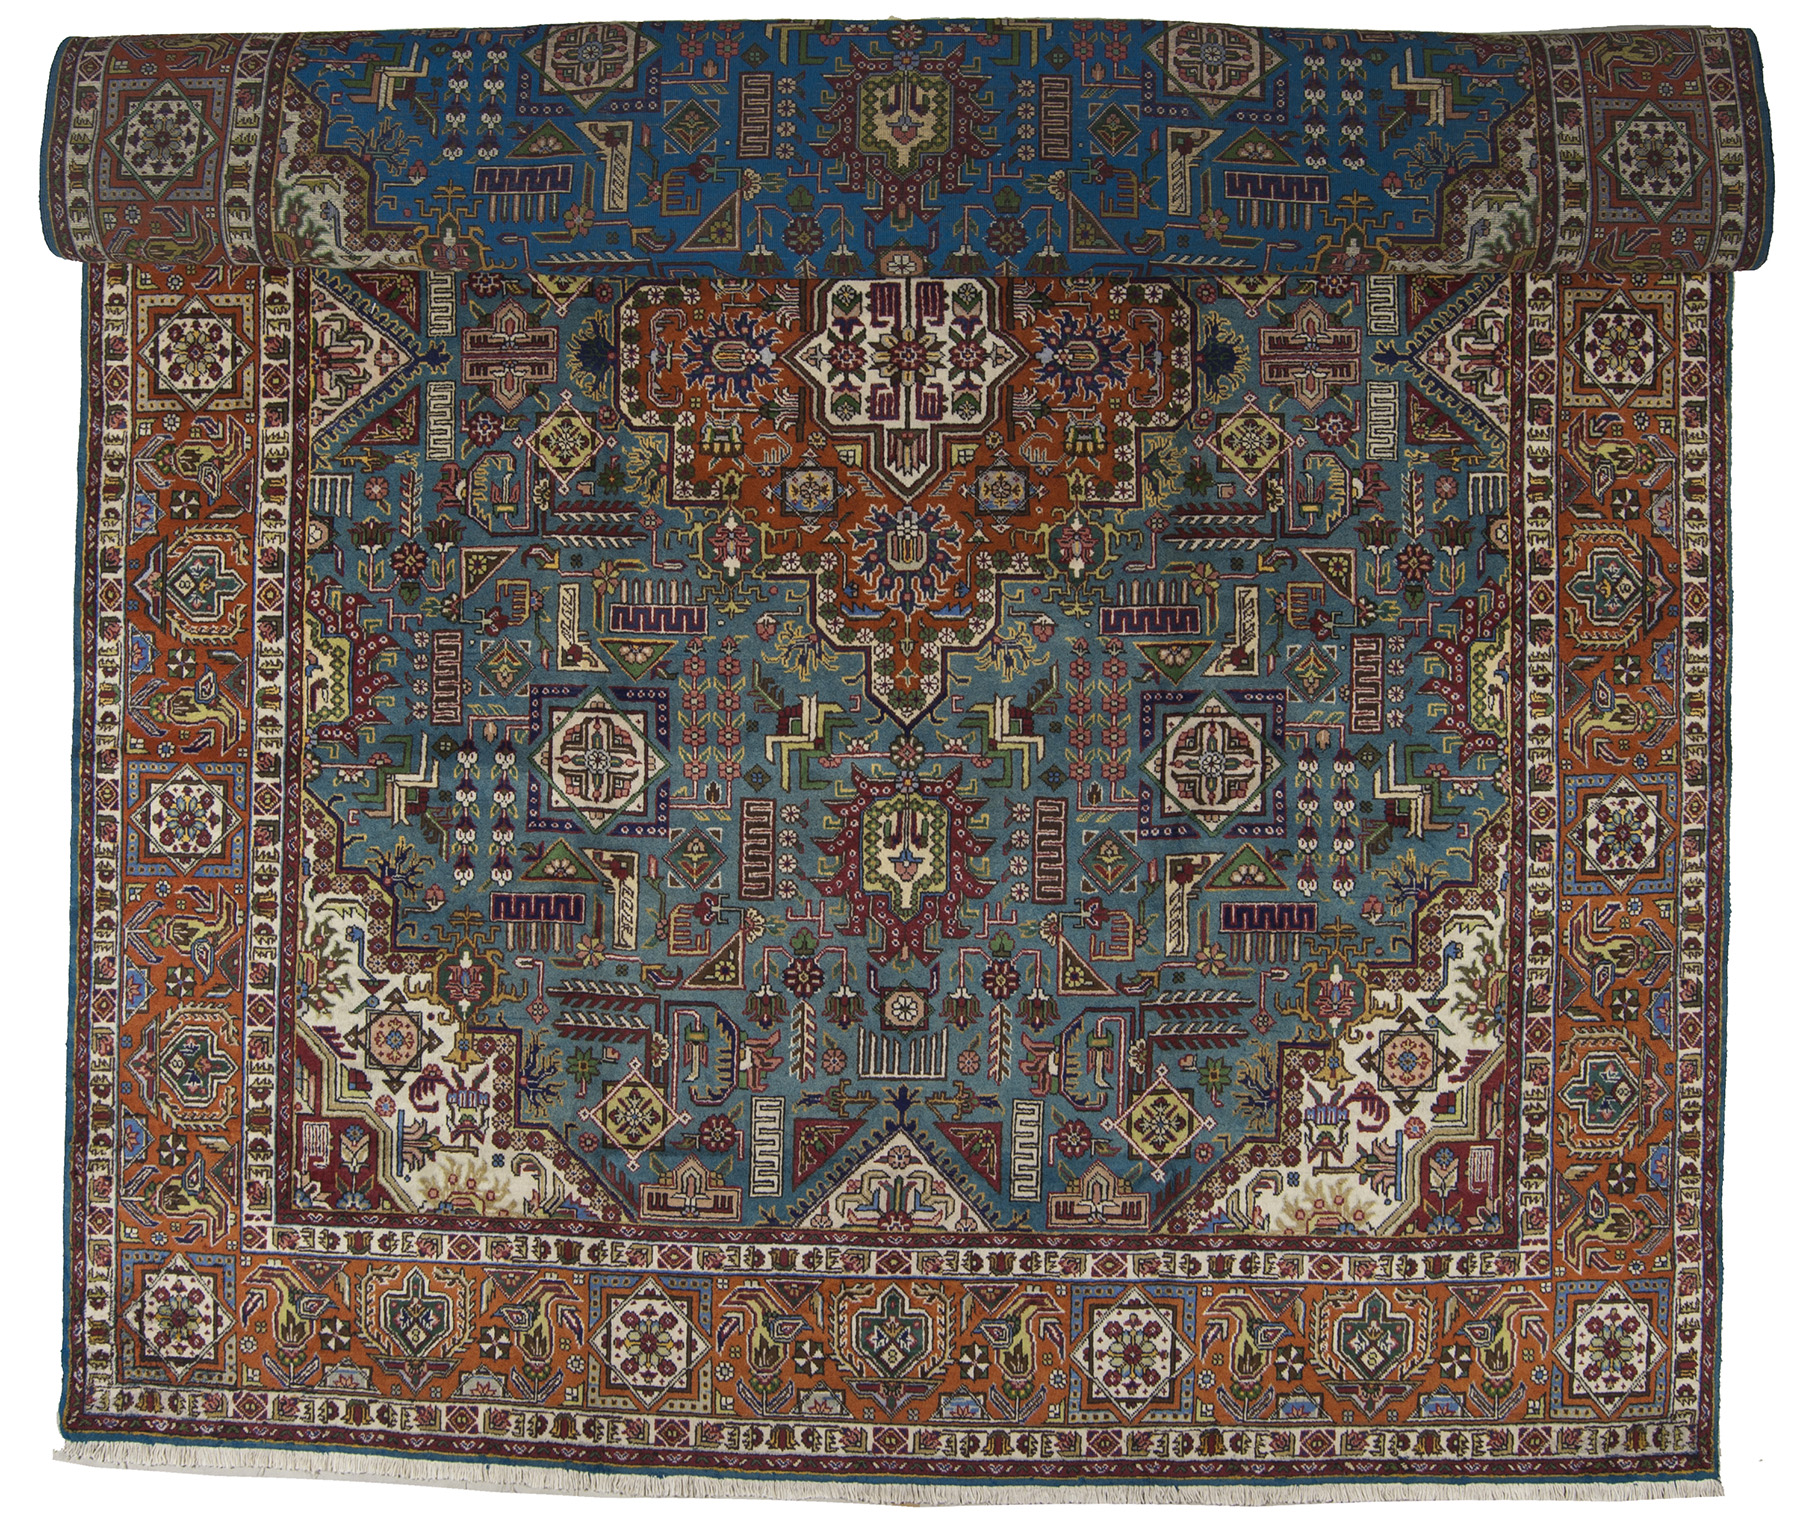 400x300 cm original hand made carpet tapis teppich alfombra rugs ebay. Black Bedroom Furniture Sets. Home Design Ideas